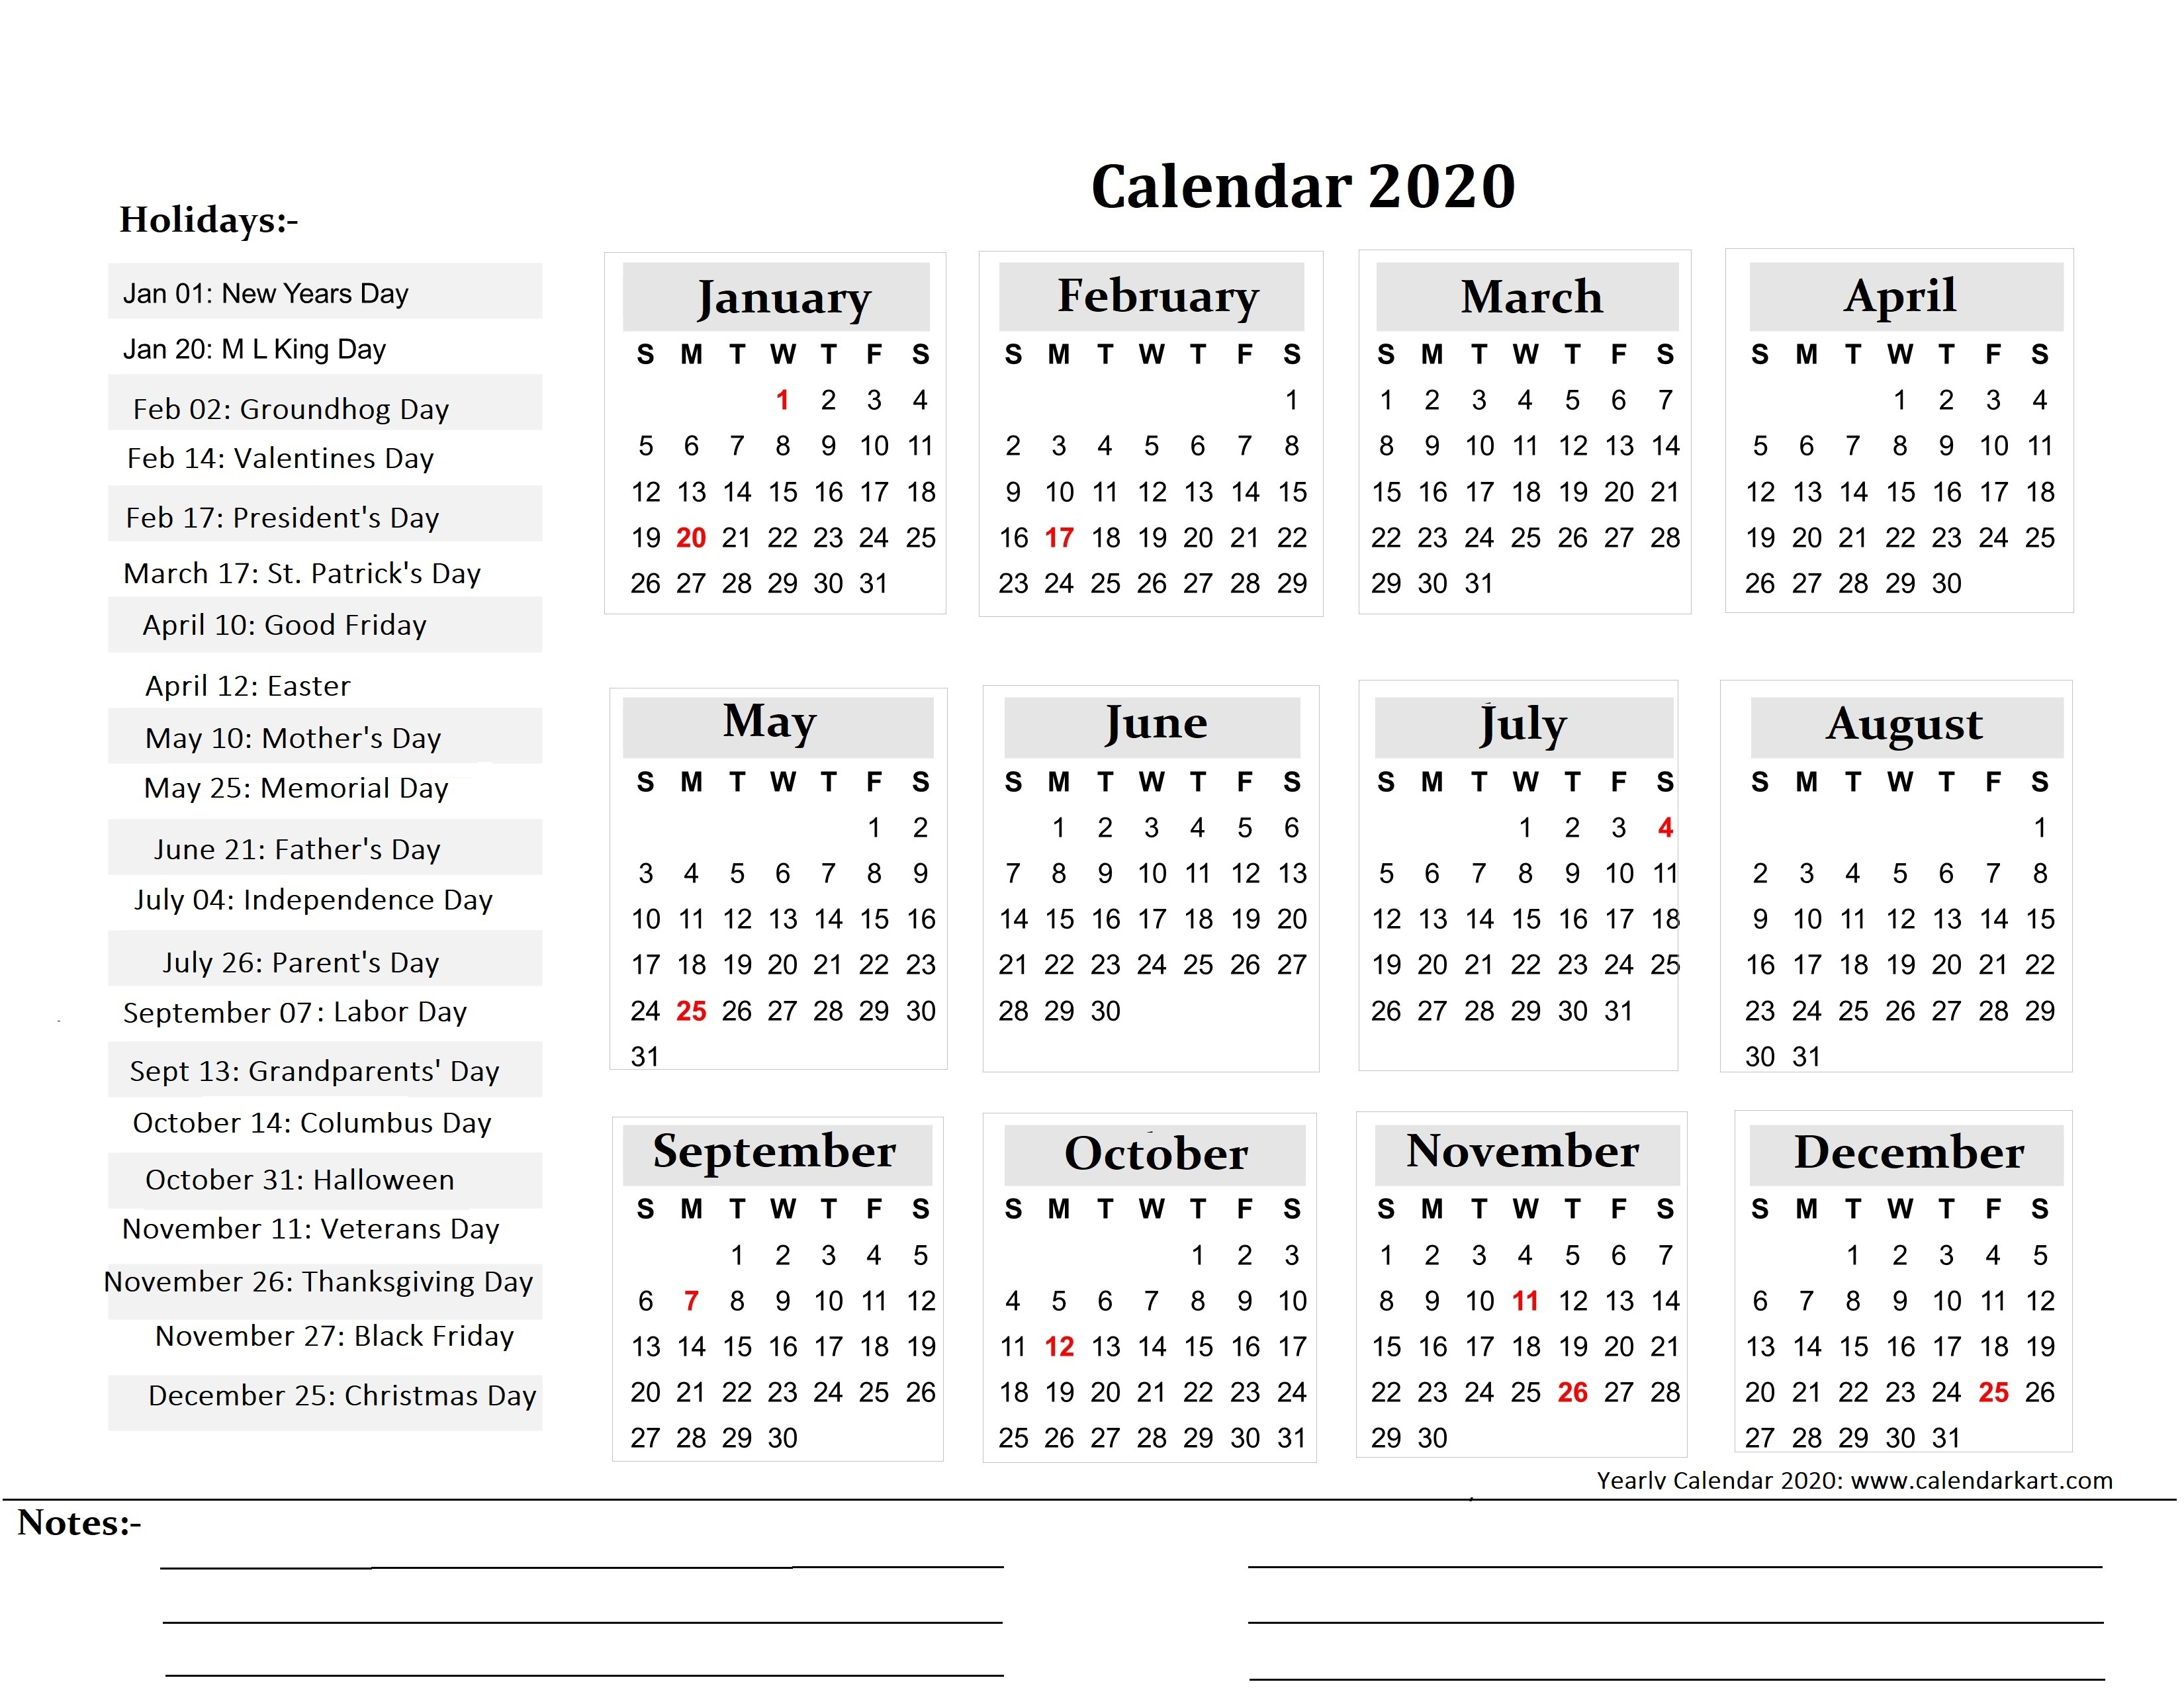 Printable Yearly Calendar 2020 - Calendar-Kart